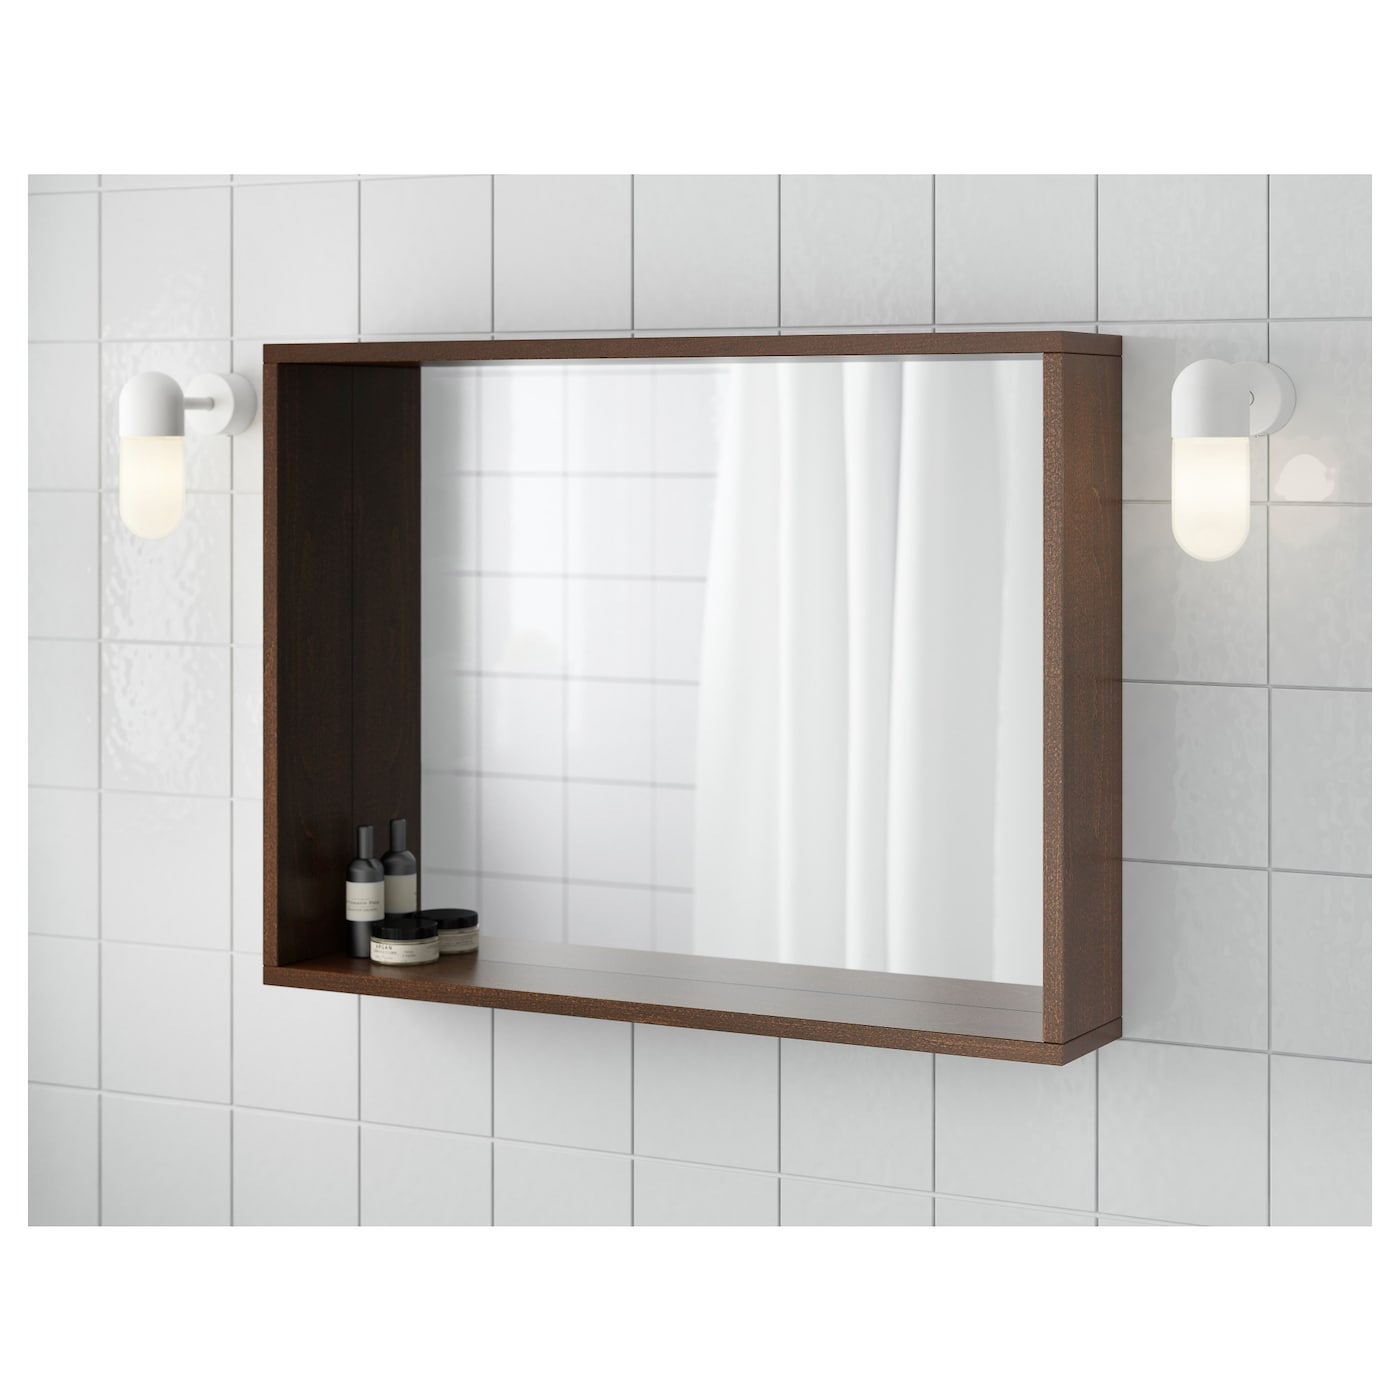 IKEA MOLGER mirror Can be hung horizontally or vertically.